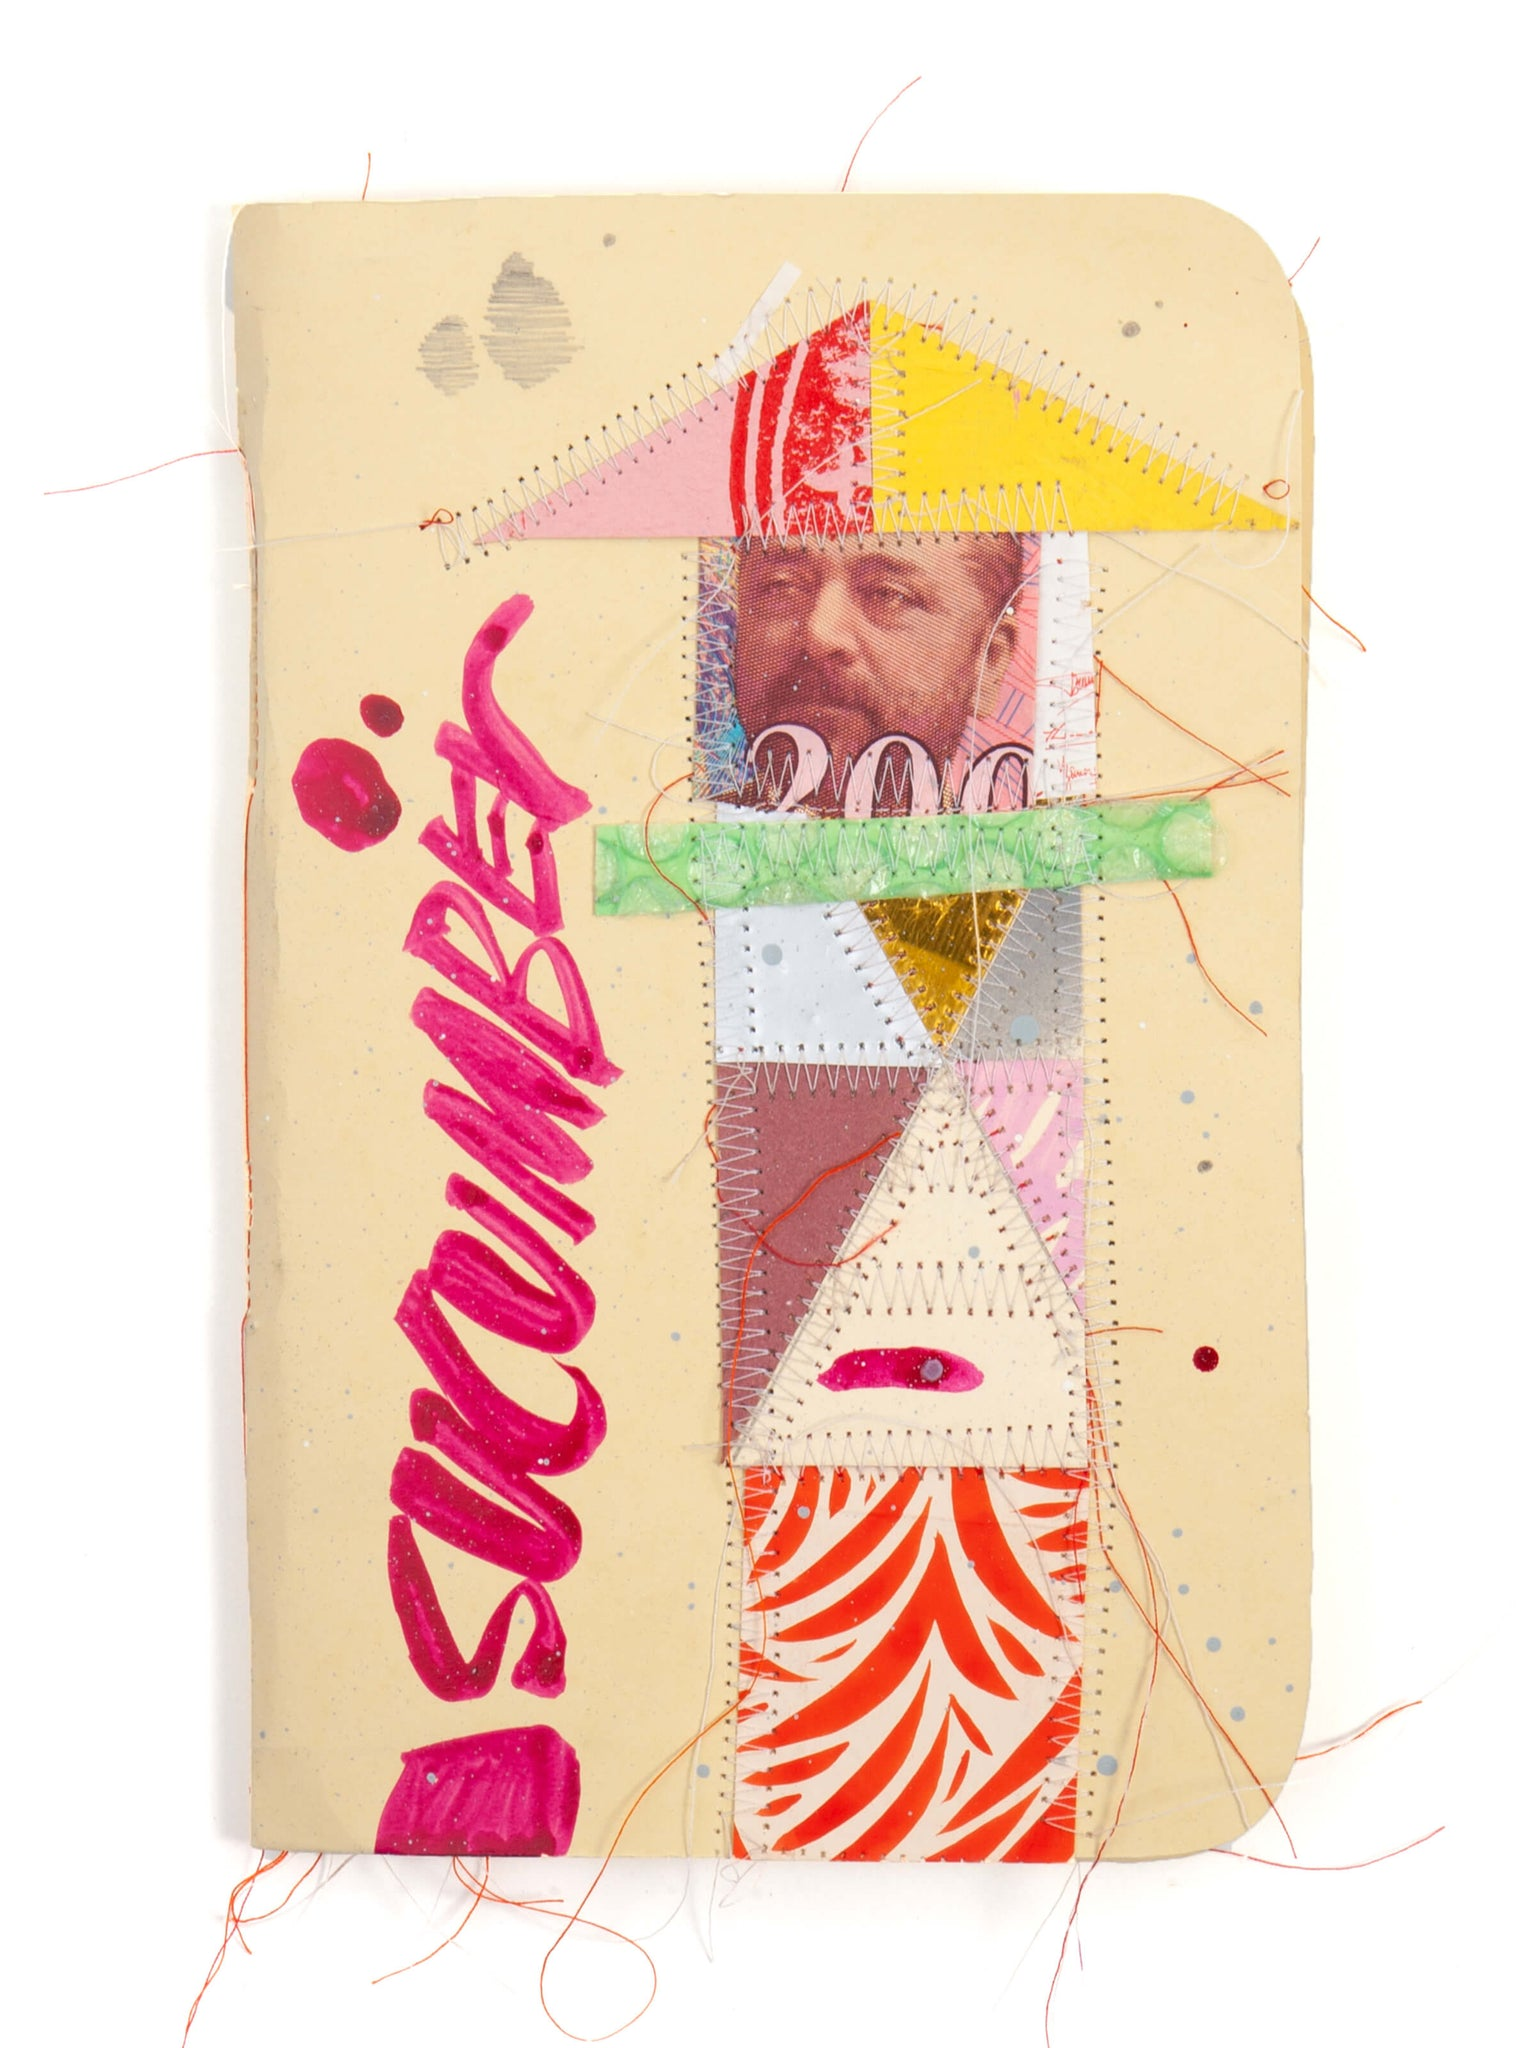 Thomas Campbell - Sucumber Zine